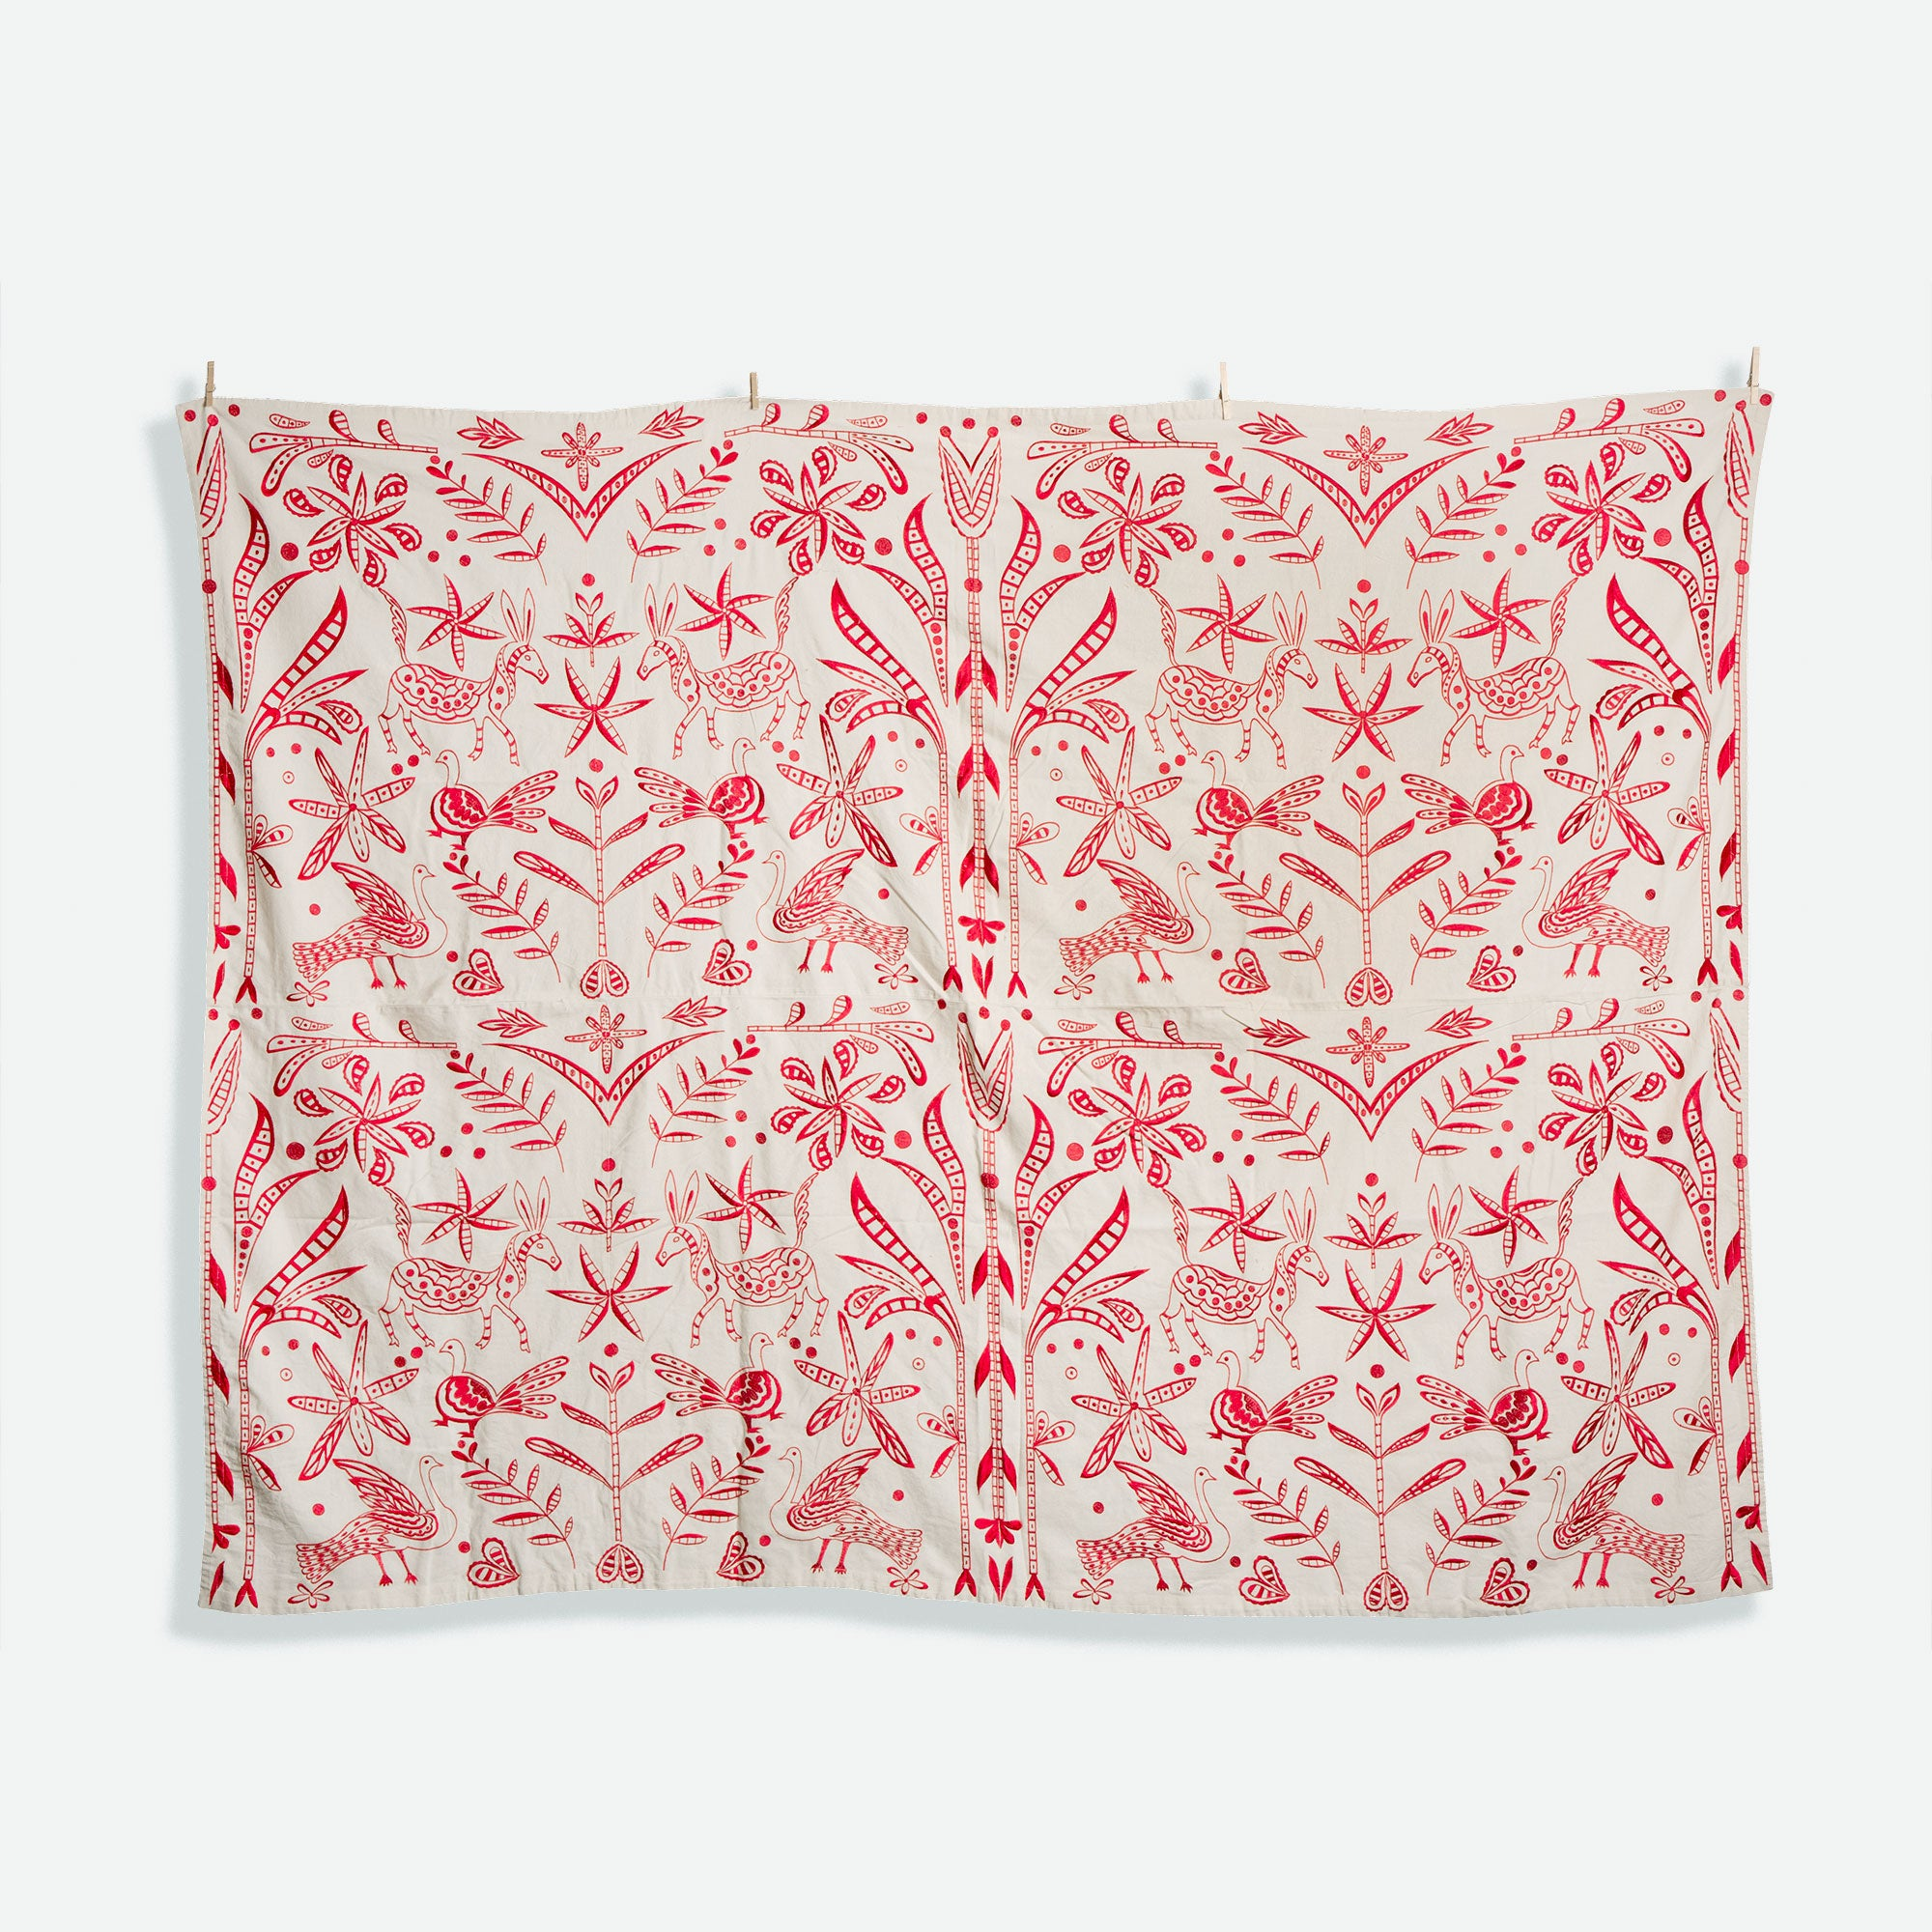 Embroidered Tablecloth Veracruz Red